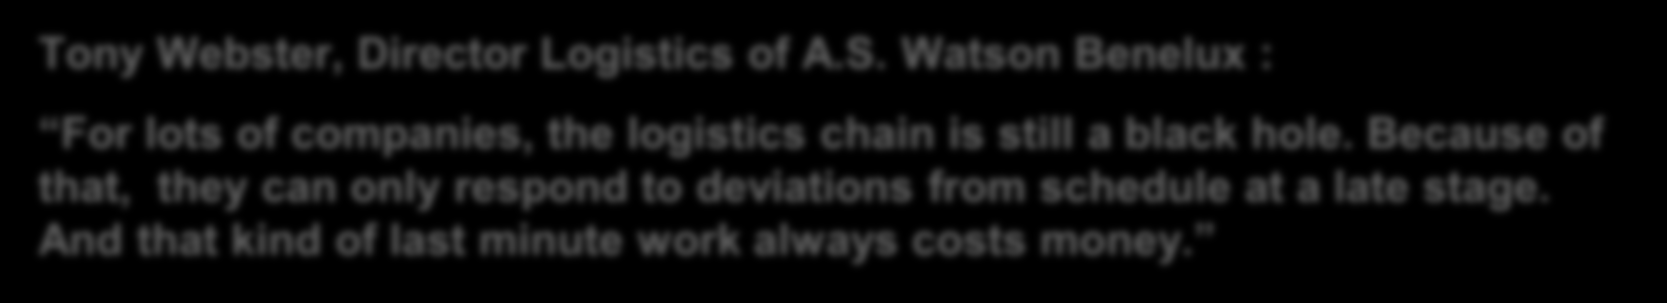 The Chain Perspective as is Tony Webster, Director Logistics of A.S. Watson Benelux : For lots of companies, the logistics chain is still a black hole.